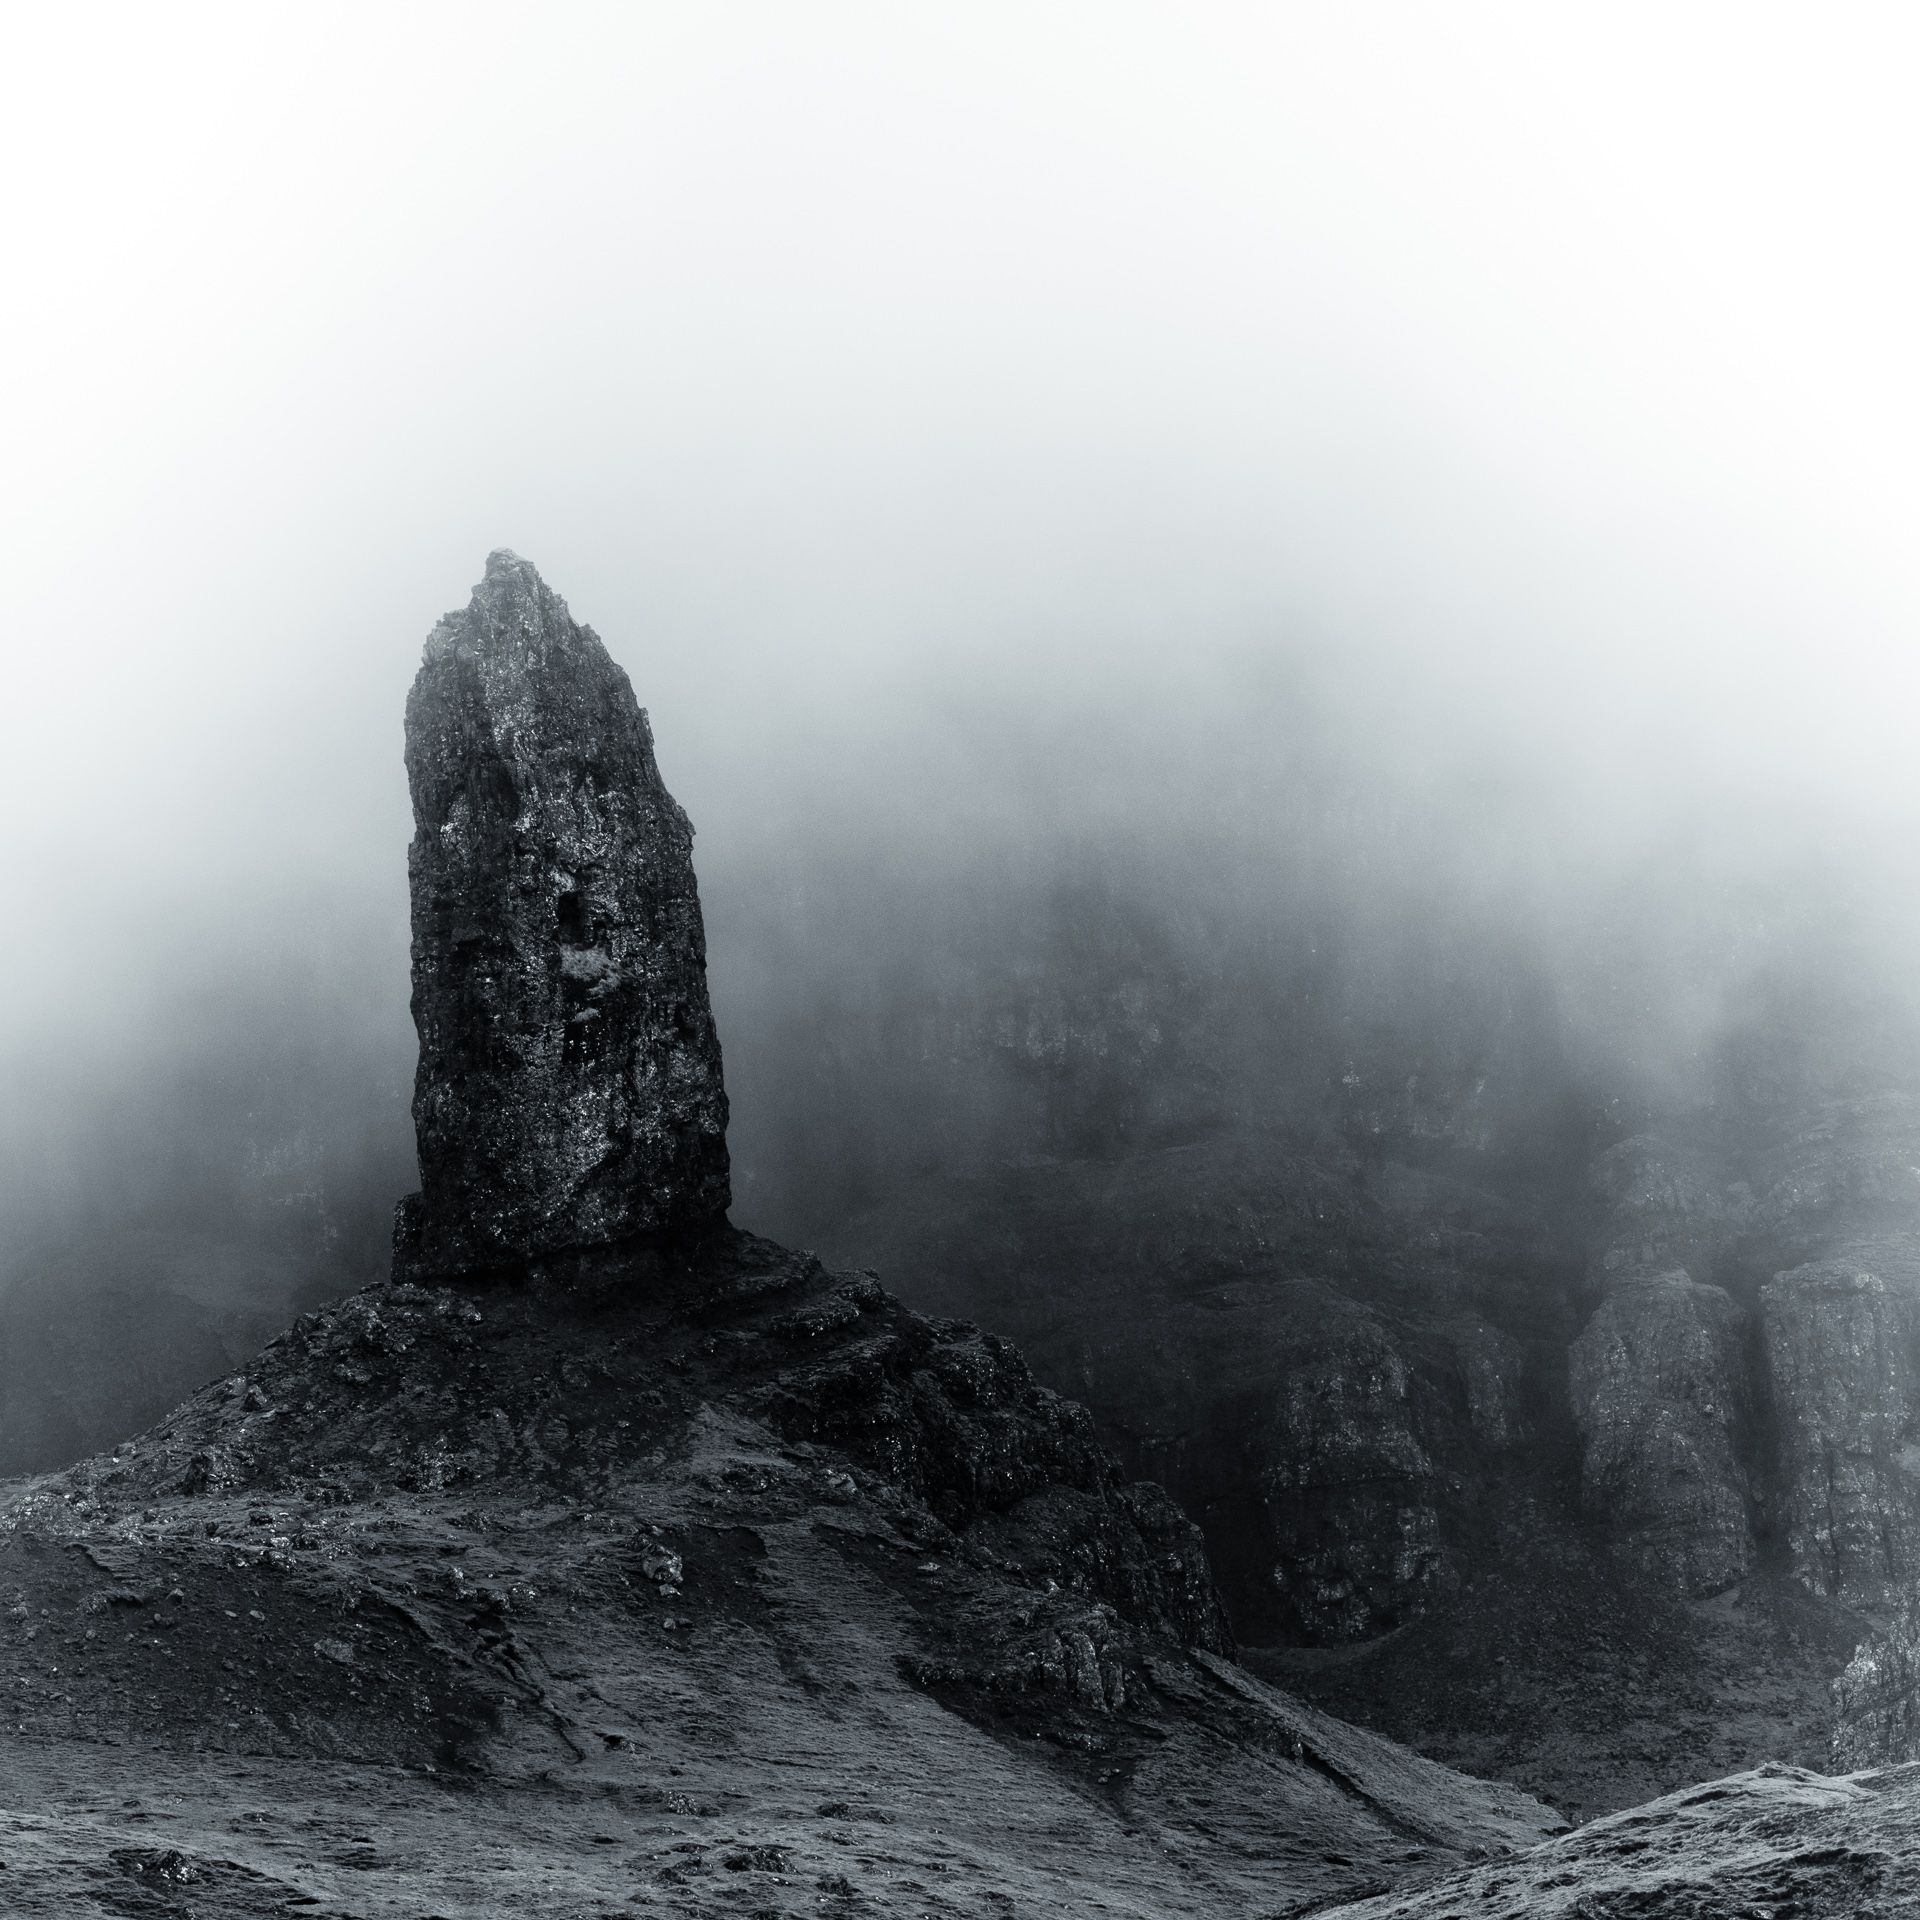 Landscape Photography By Jan Erik Waider Northlandscapes Norway Iceland Greenland And Bey Fine Art Landscape Photography Fine Art Landscape Fine Art Photo